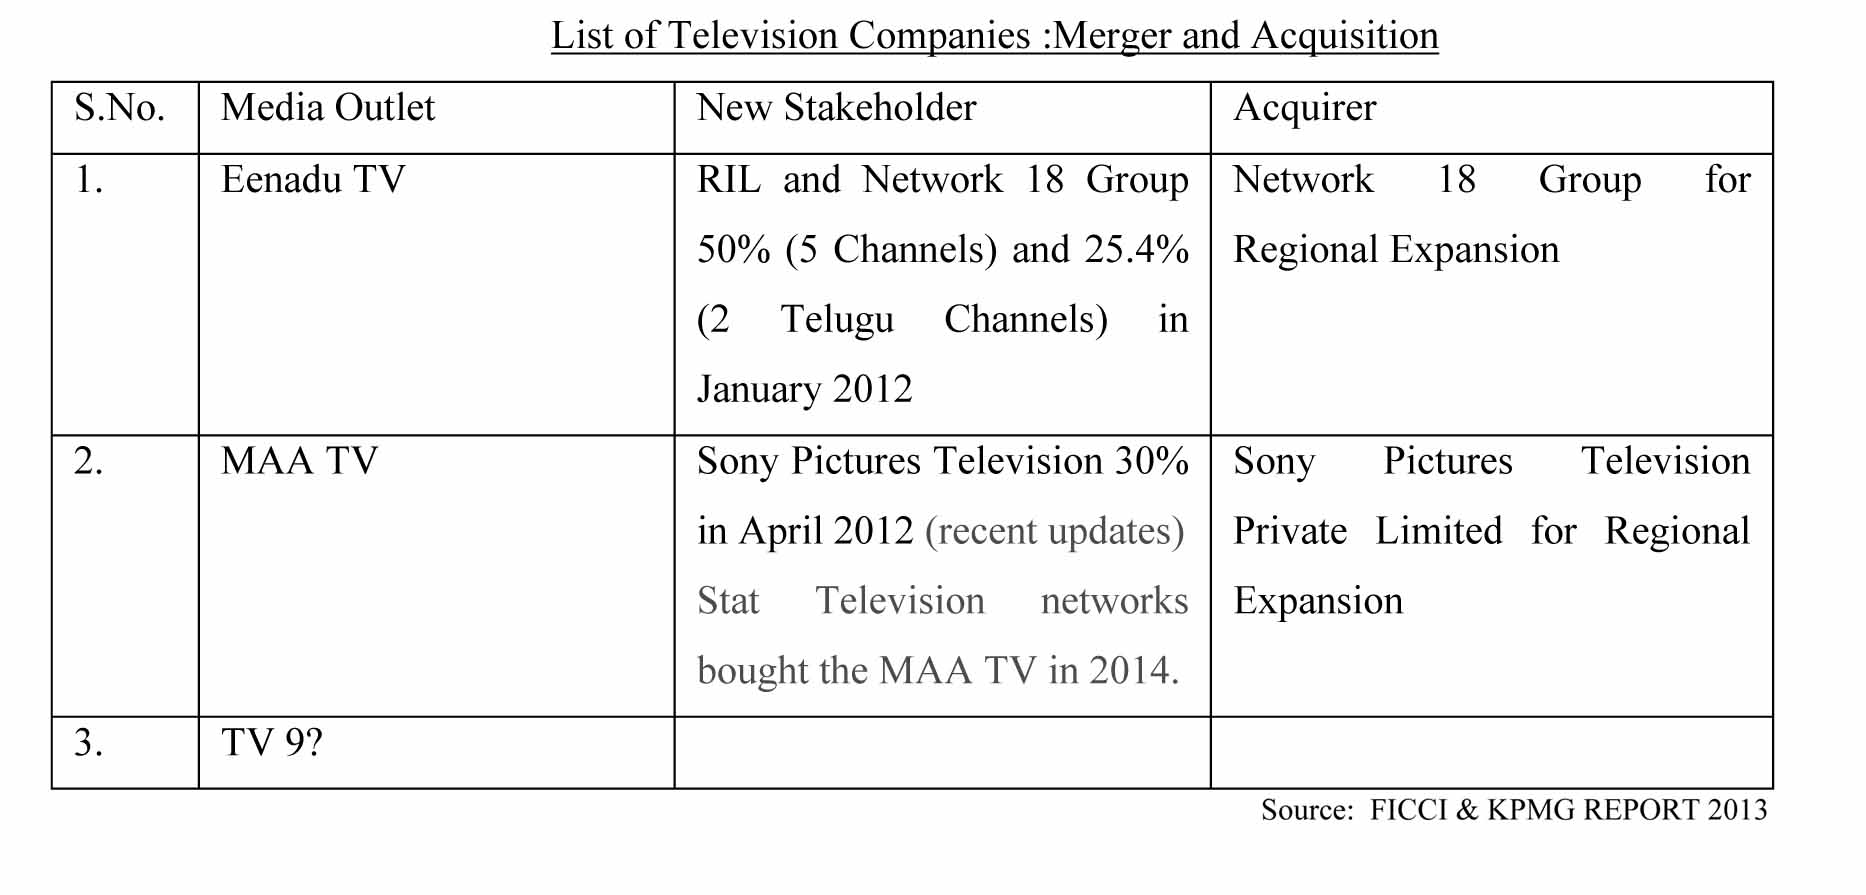 Cross-Media Ownership and Corporatization of Media in Telugu Regions